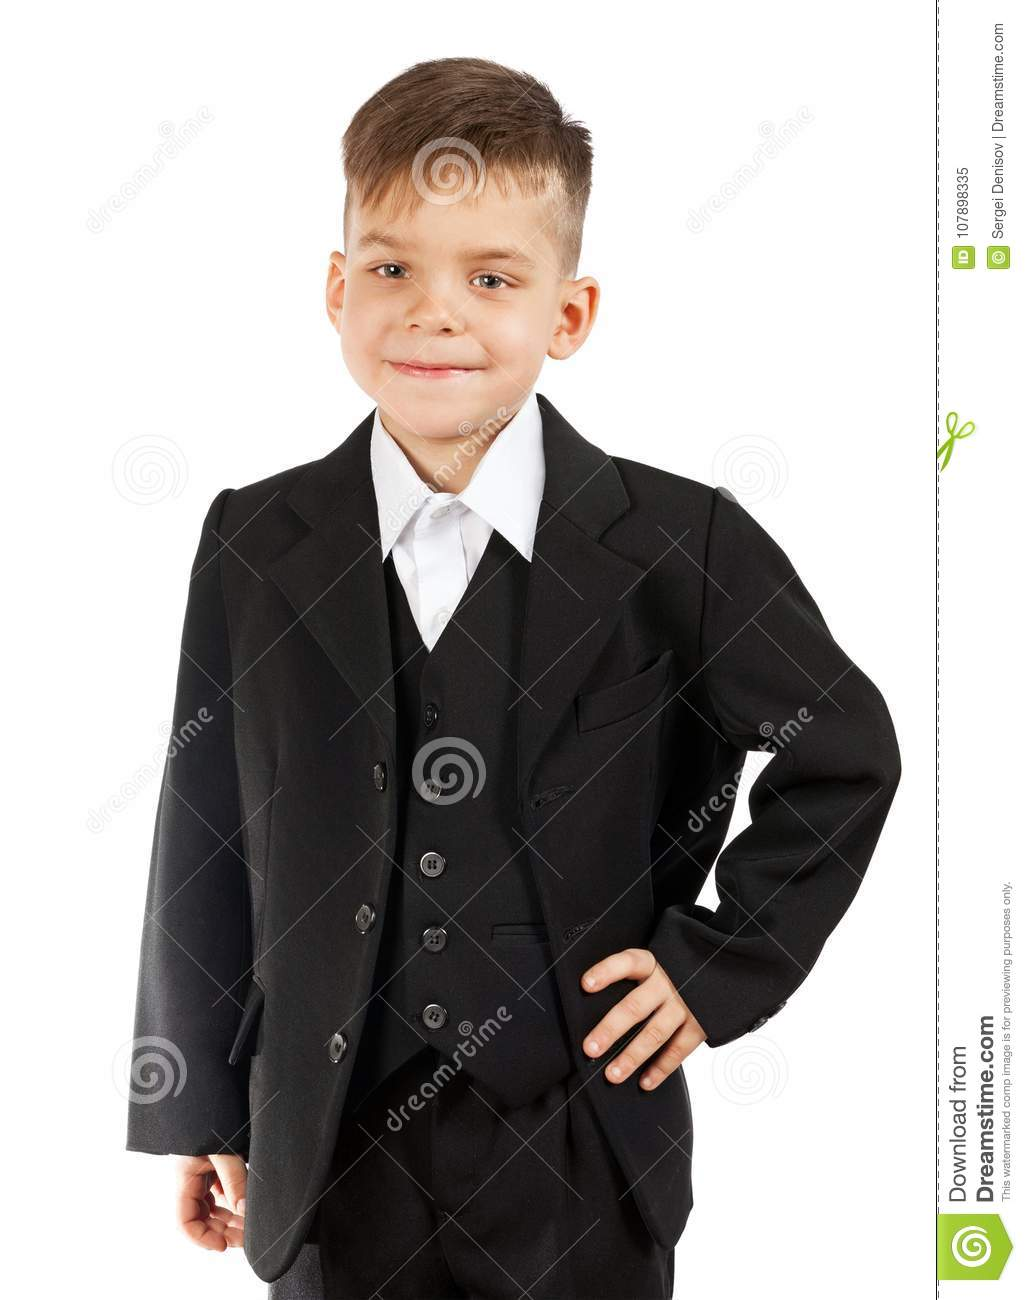 df580b87a Cute Little Boy In A White Shirt And Black Suit Stock Image - Image ...